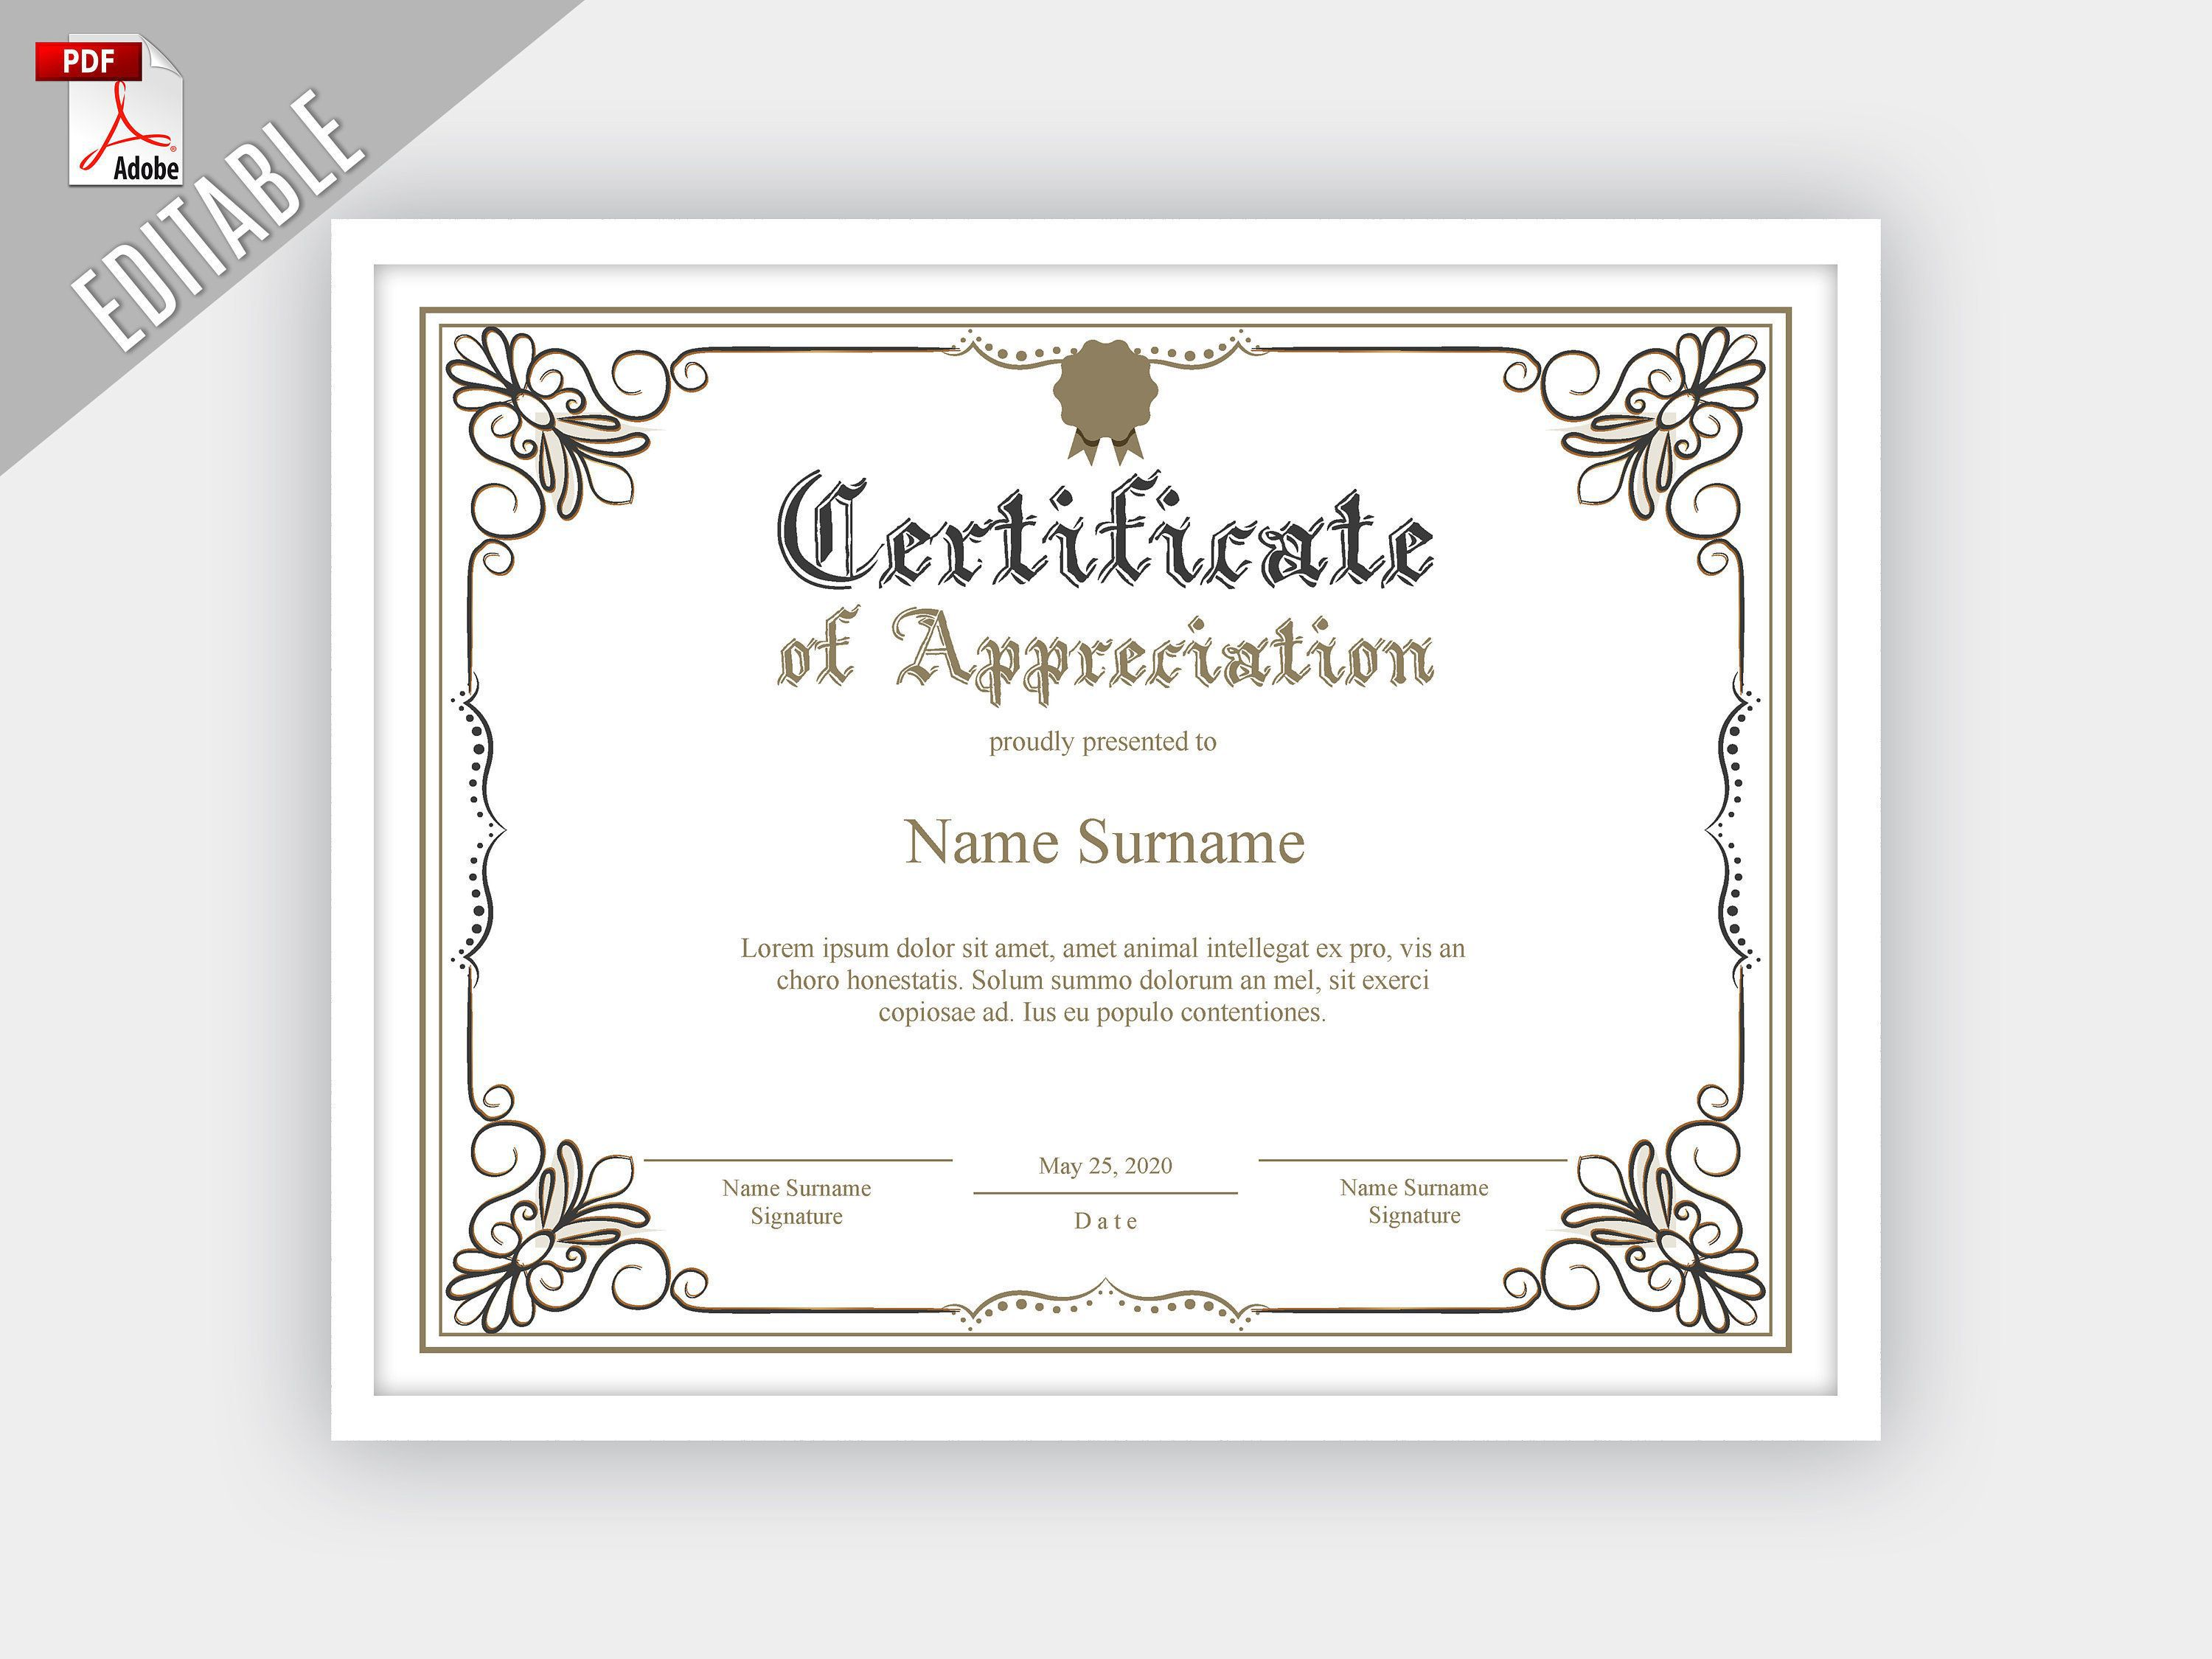 008 Rare Free Marriage Certificate Template Highest Quality  Renewal Translation From Spanish To English Wedding DownloadFull